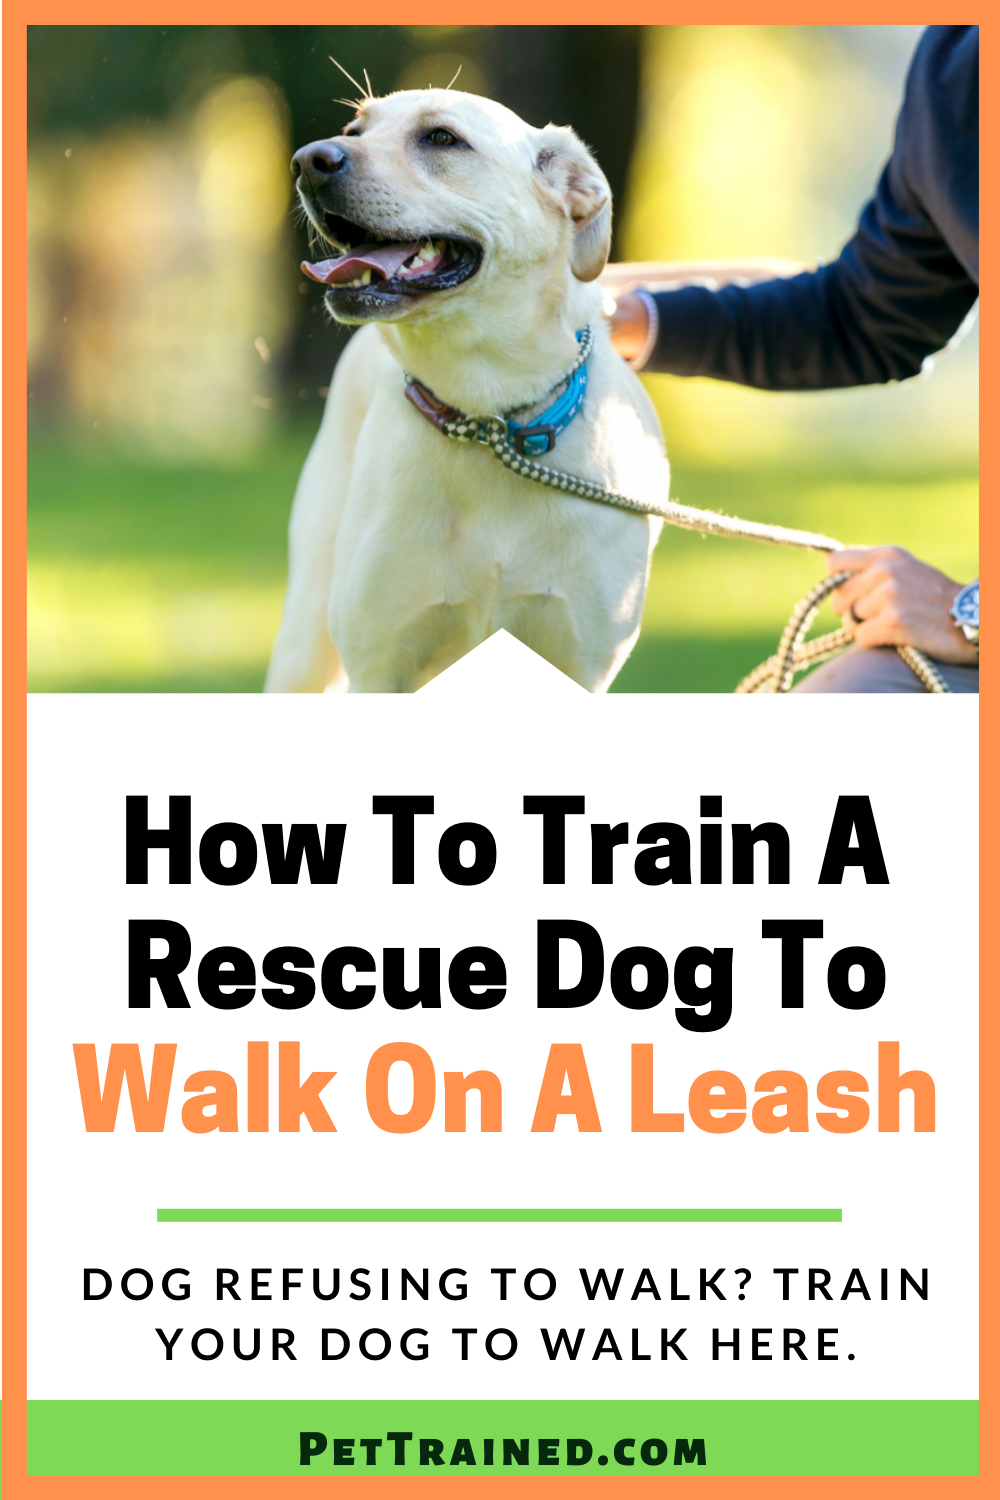 dog training tips to teach adopted dog to walk on a leash